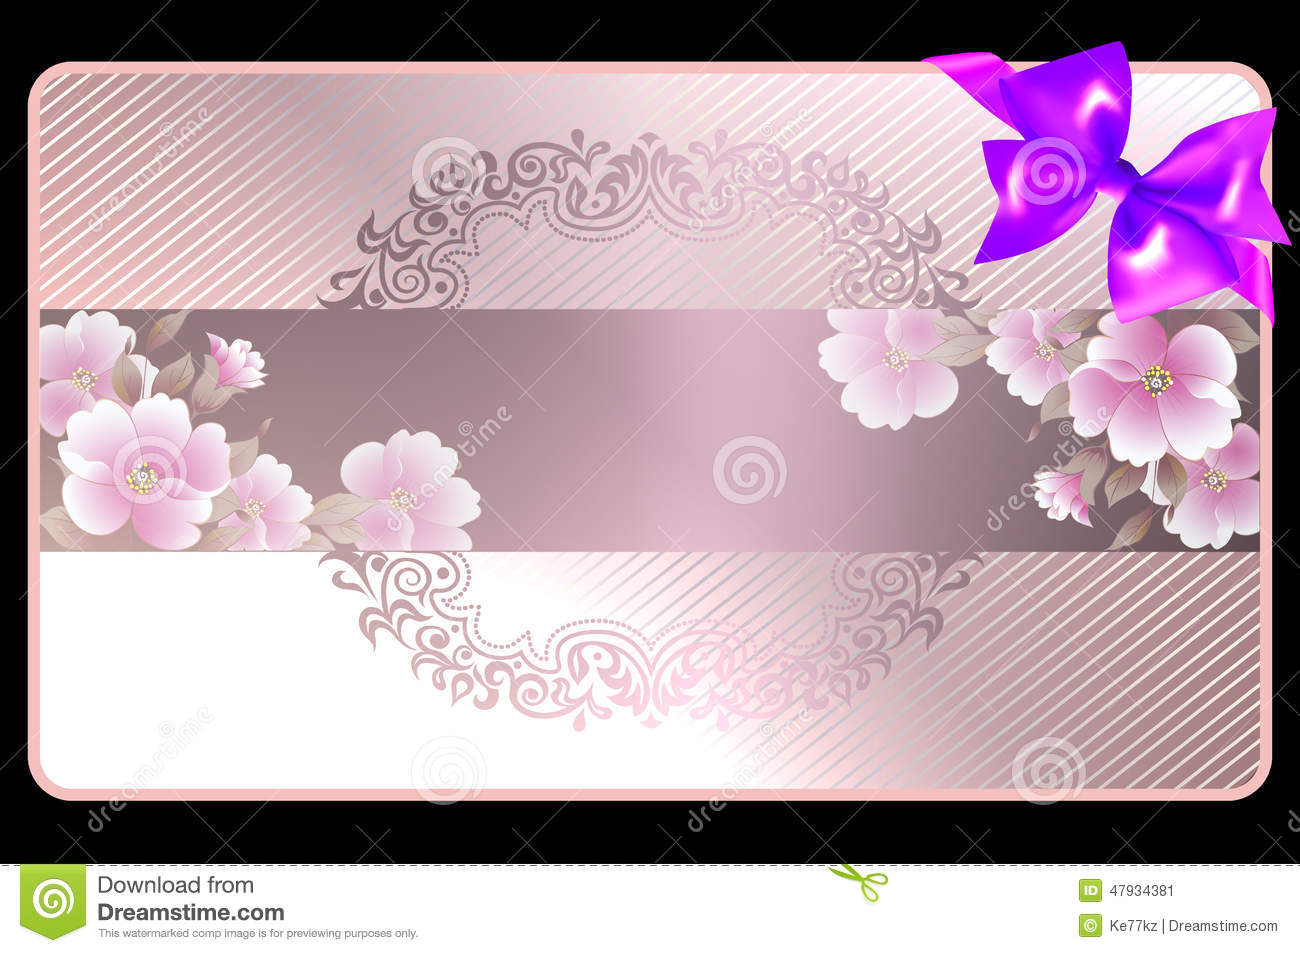 Wedding Gift Cards Online: Gift Card. Stock Illustration